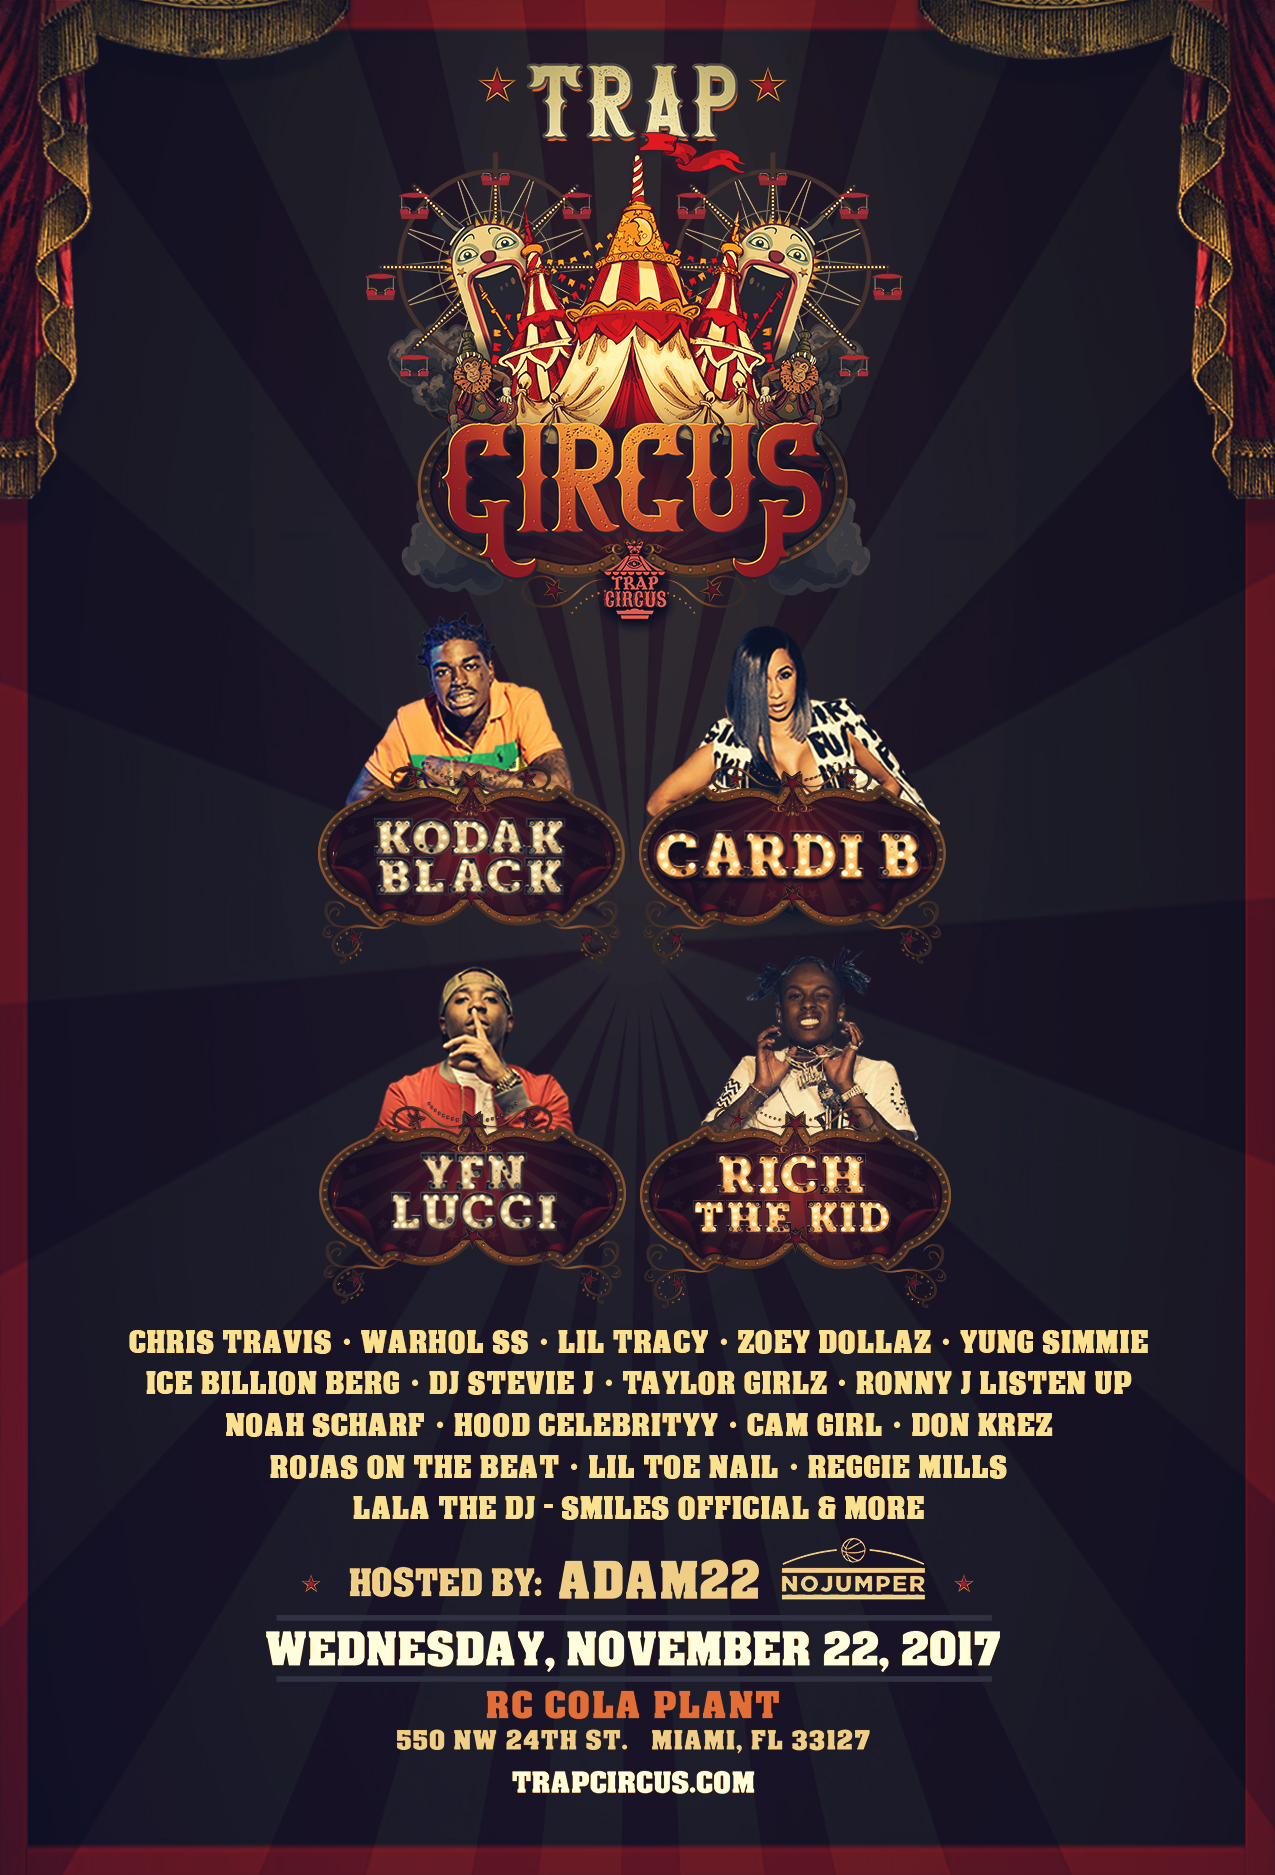 Cardi B, Kodak Black, YFN Lucci & Rich The Kid Headline The 1st Annual Trap Circus Festival In Miami!